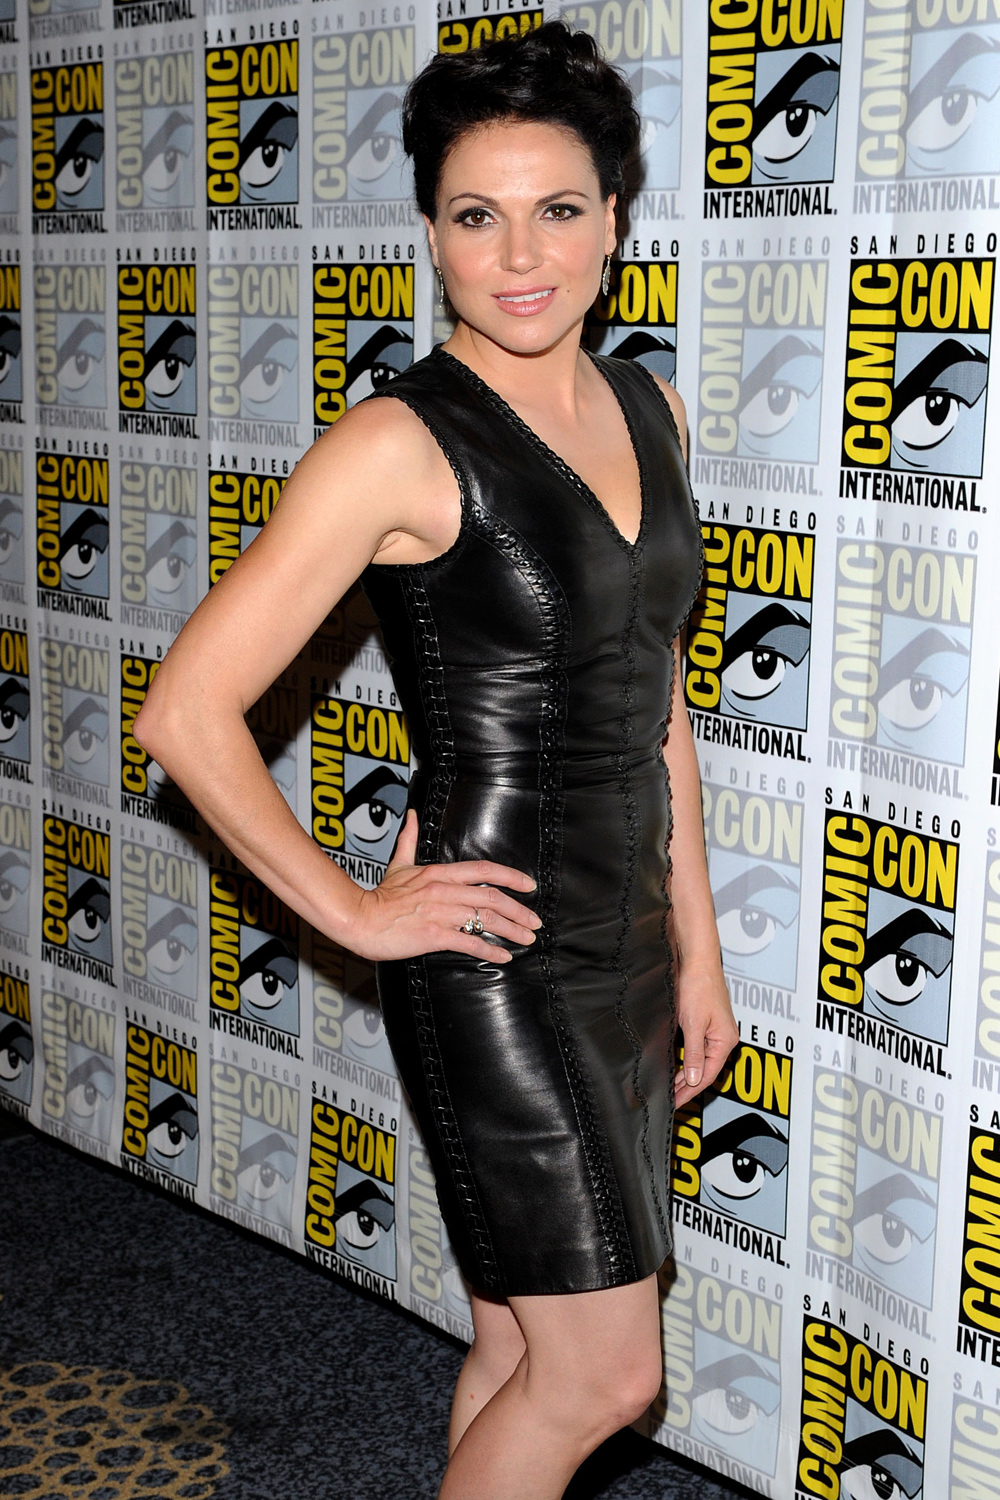 Lana Parrilla Once Upon A Time Comic-Con